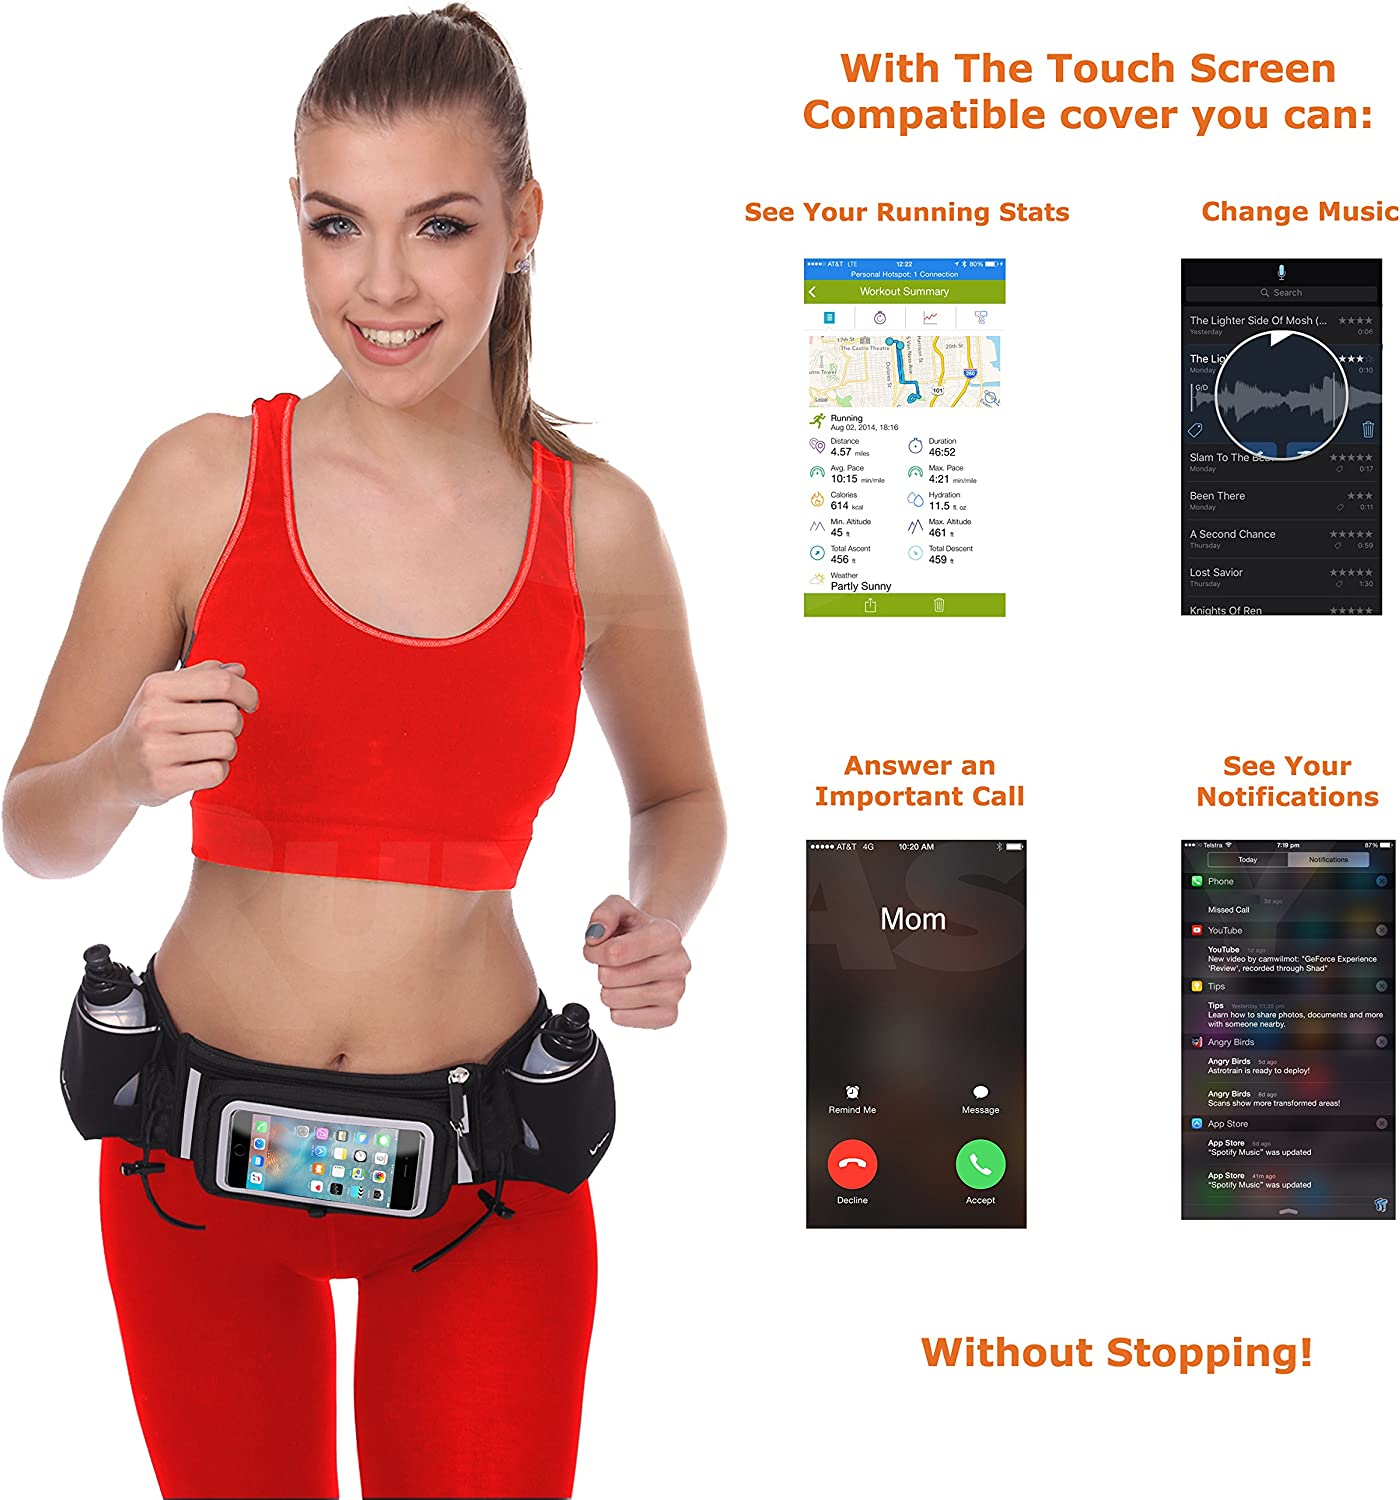 Runtasty [Voted No.1 Hydration Belt] Winners' Running Fuel Belt - Includes Accessories: 2 BPA Free Water Bottles & Runners Ebook - Fits Any iPhone - w/Touchscreen Cover - No Bounce Fit and More! : Sports & Outdoors